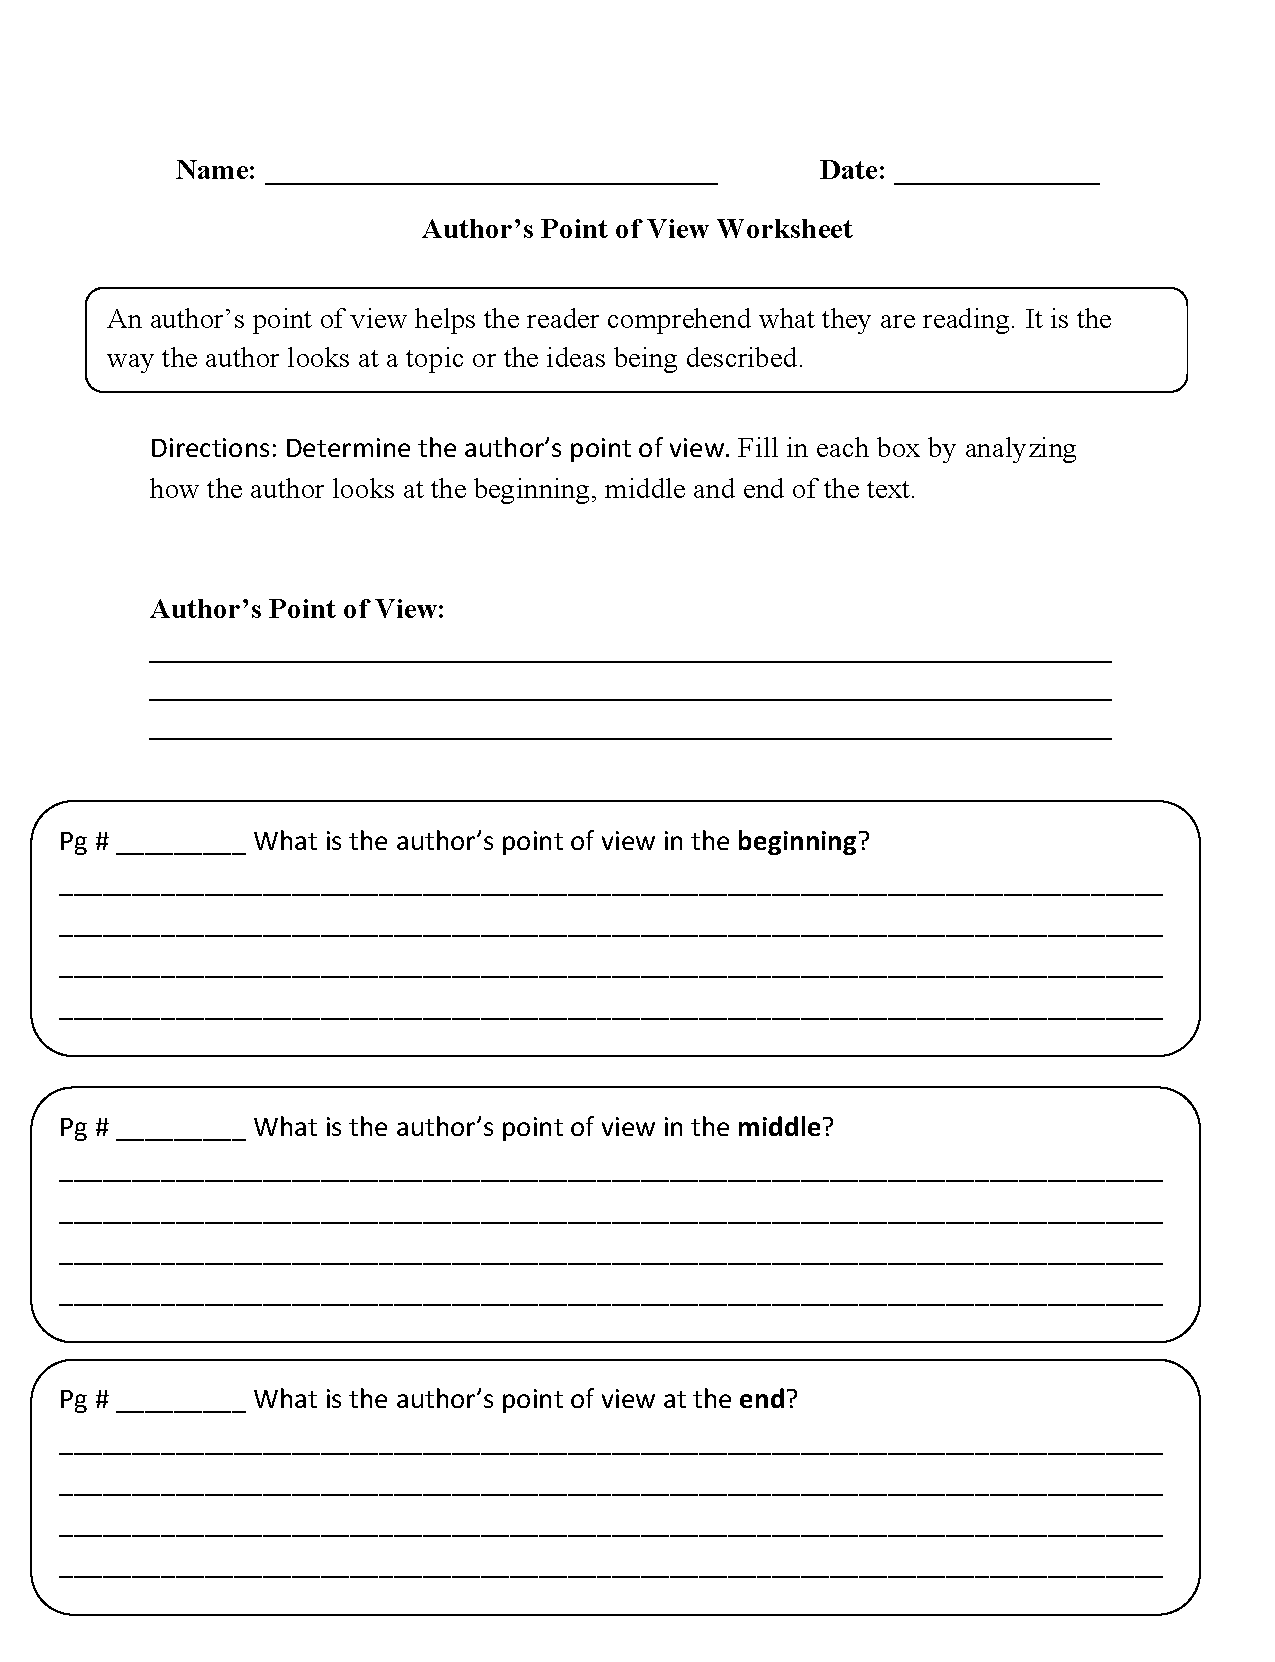 Weirdmailus  Scenic Englishlinxcom  Point Of View Worksheets With Interesting Point Of View Worksheets With Agreeable Coordinating And Subordinating Conjunctions Worksheets Also Grammar Rd Grade Worksheets In Addition Division Equations Worksheet And Dividing Fractions Practice Worksheet As Well As Elementary English Worksheets Additionally Adjective Vs Adverb Worksheet From Englishlinxcom With Weirdmailus  Interesting Englishlinxcom  Point Of View Worksheets With Agreeable Point Of View Worksheets And Scenic Coordinating And Subordinating Conjunctions Worksheets Also Grammar Rd Grade Worksheets In Addition Division Equations Worksheet From Englishlinxcom